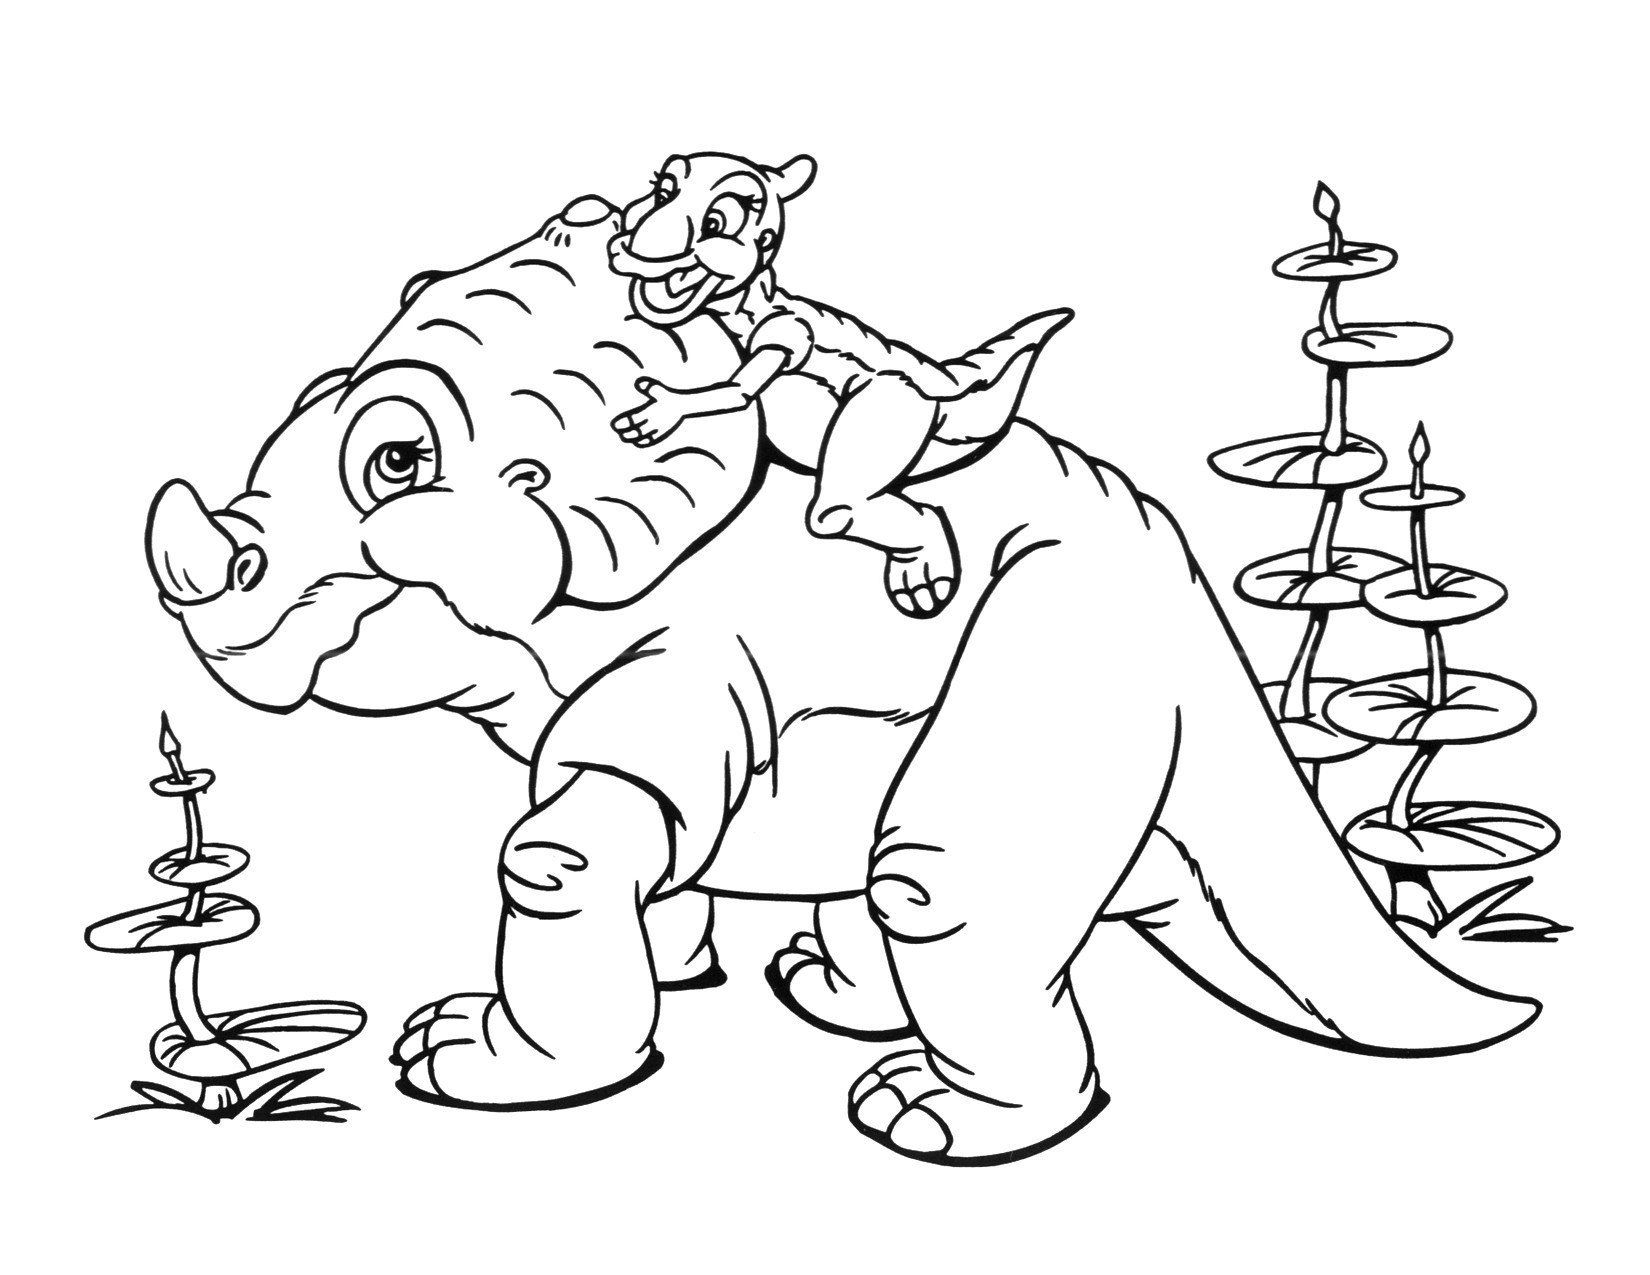 Coloring Pages for Babies Lovely Blastoise Coloring Page